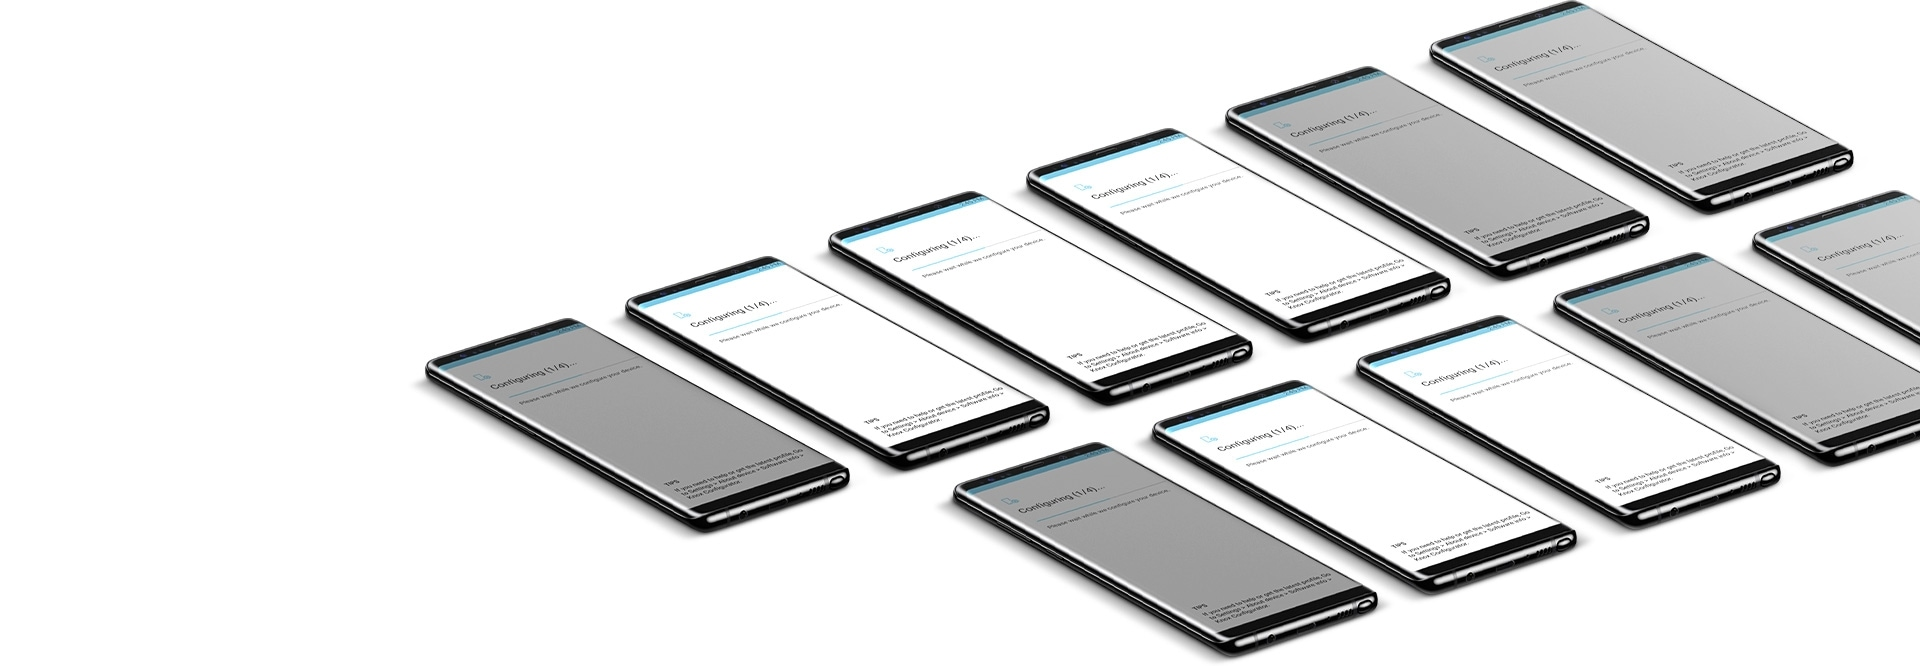 Galaxy Note8 phones showing one phone screen on and the other phones displaying the screen off